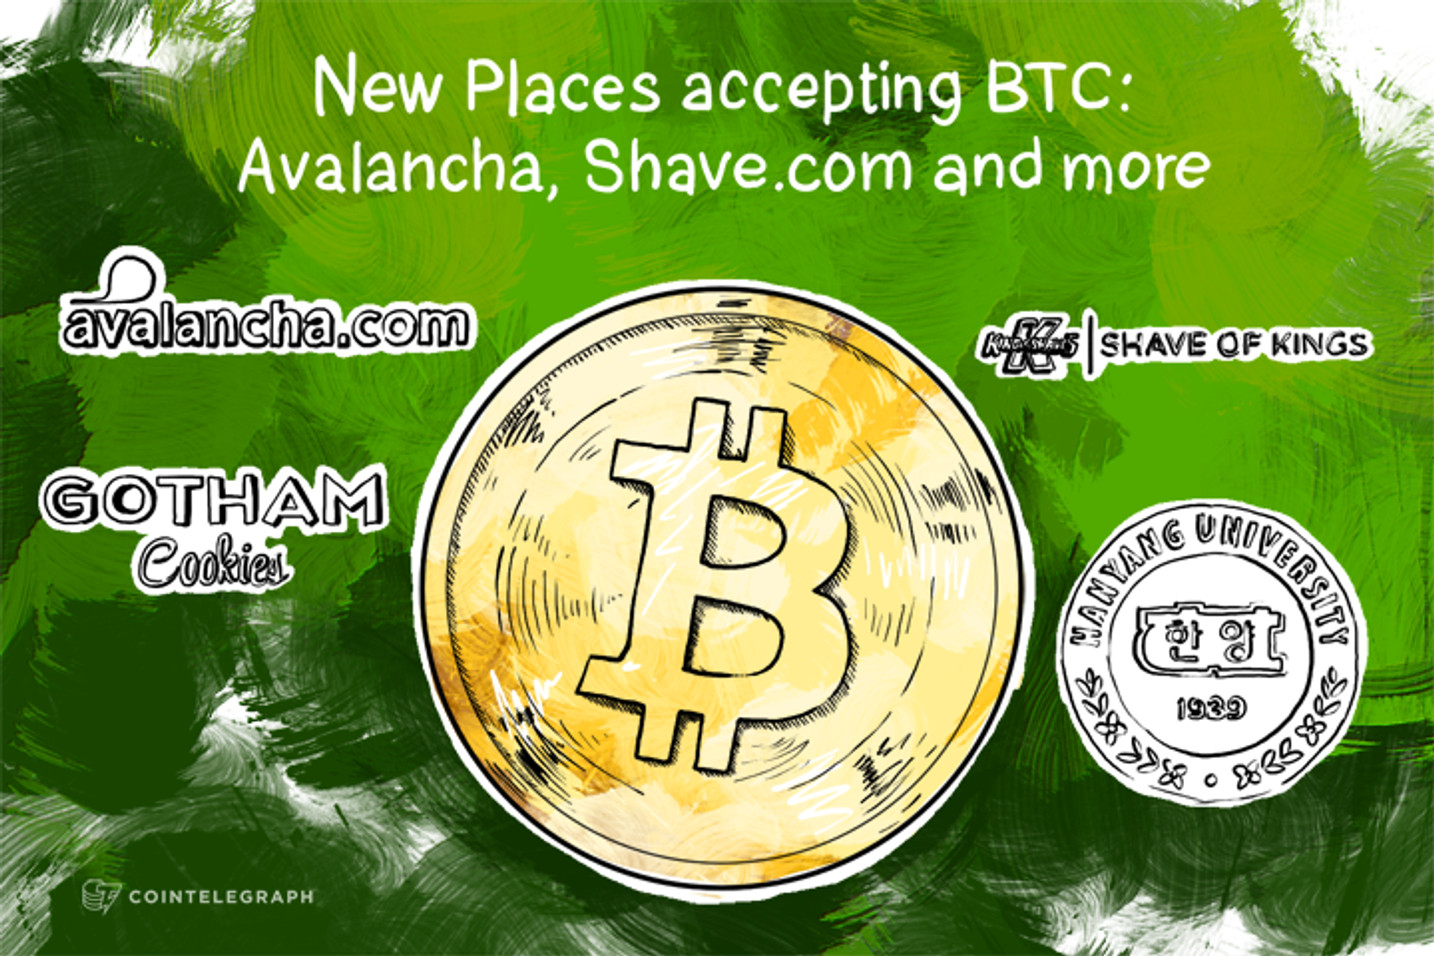 New Places accepting BTC: Avalancha, Shave.com and more